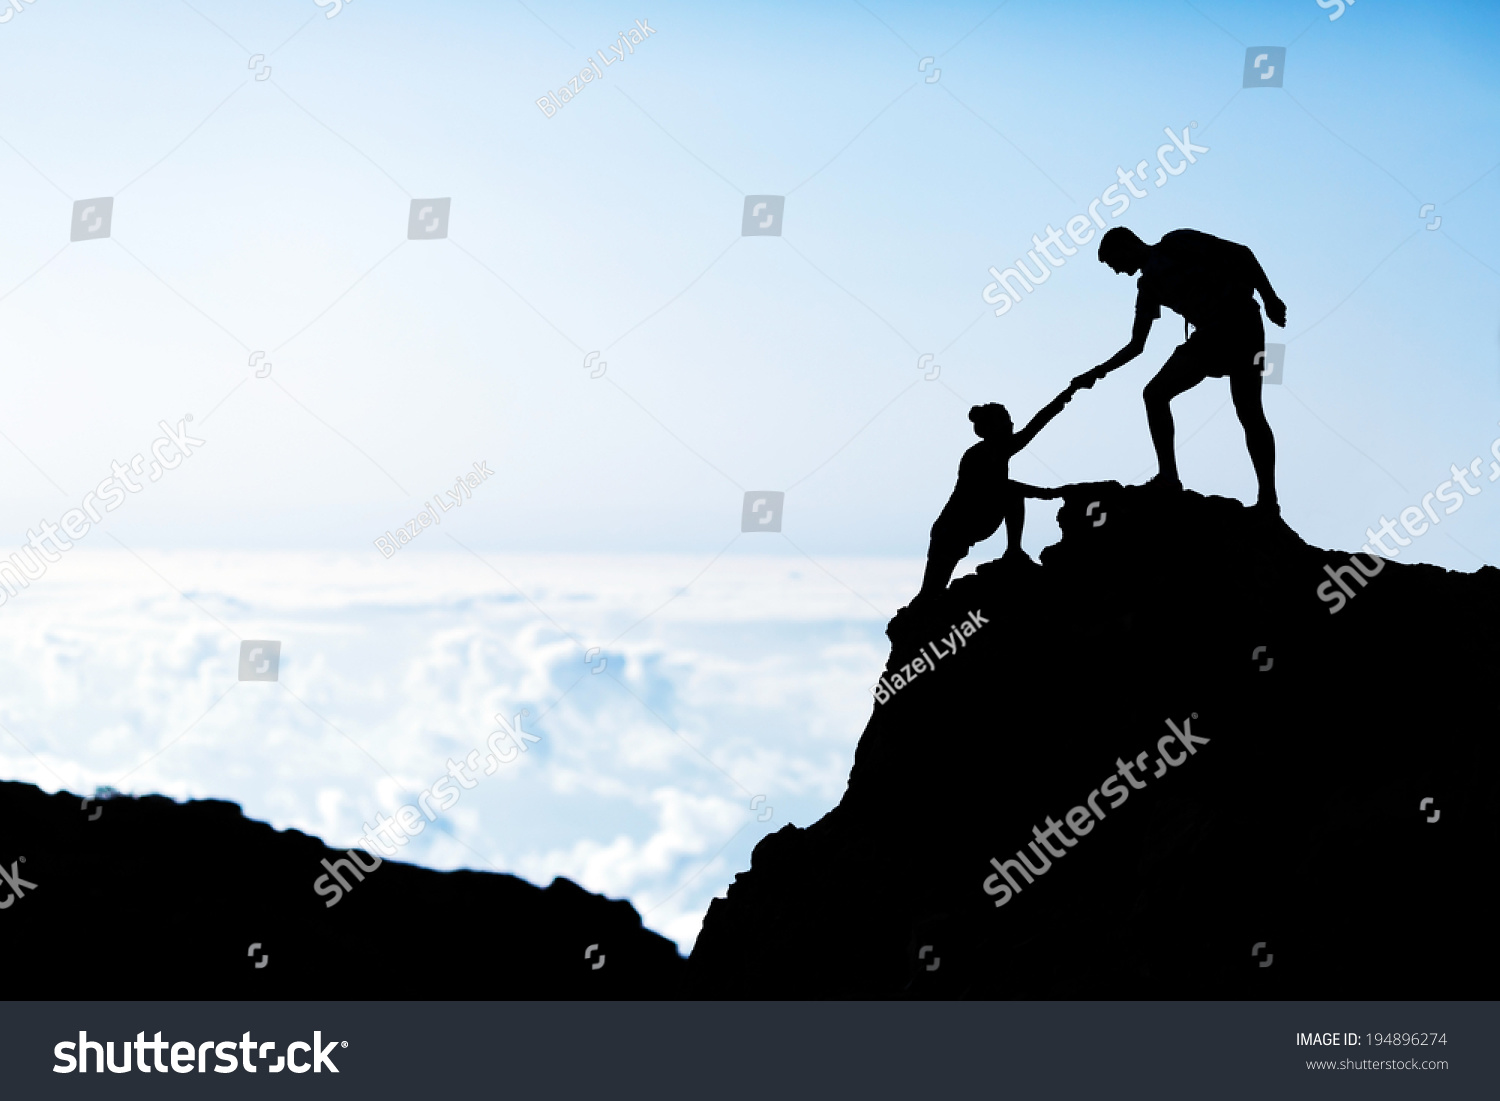 couple hiking teamwork partners help each stock photo  couple hiking teamwork partners help each other silhouette in mountains motivation and inspiration man